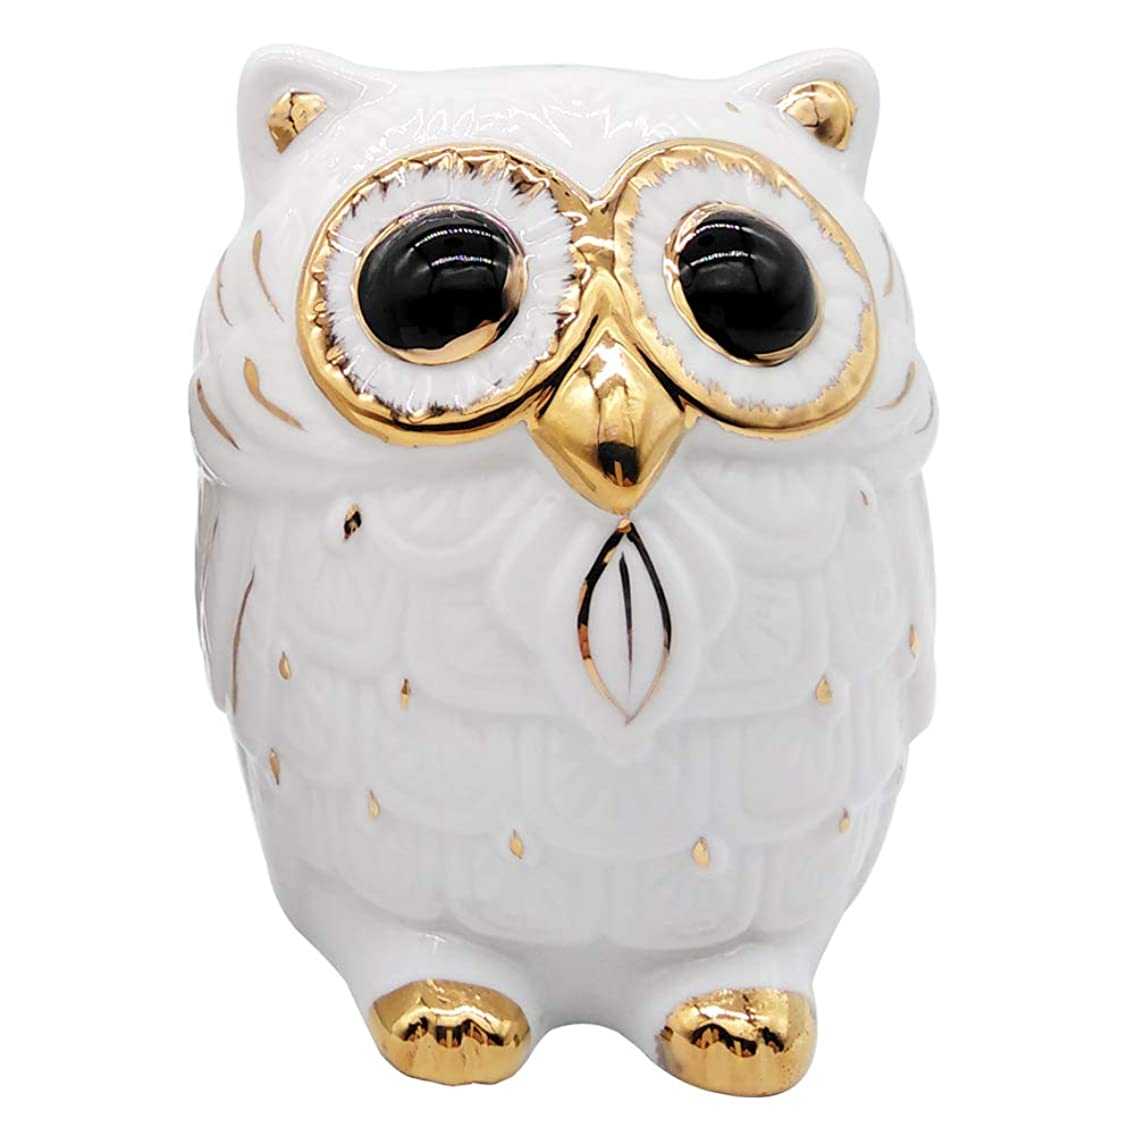 iefoah Owl Girls Piggy Bank Cute Owl Shape Gifts Ceramic Coin Banks White Can Owls Christmas Birthday Gift for Adults Kids Children Baby Home Bedroom Nursery Decorative Oranment